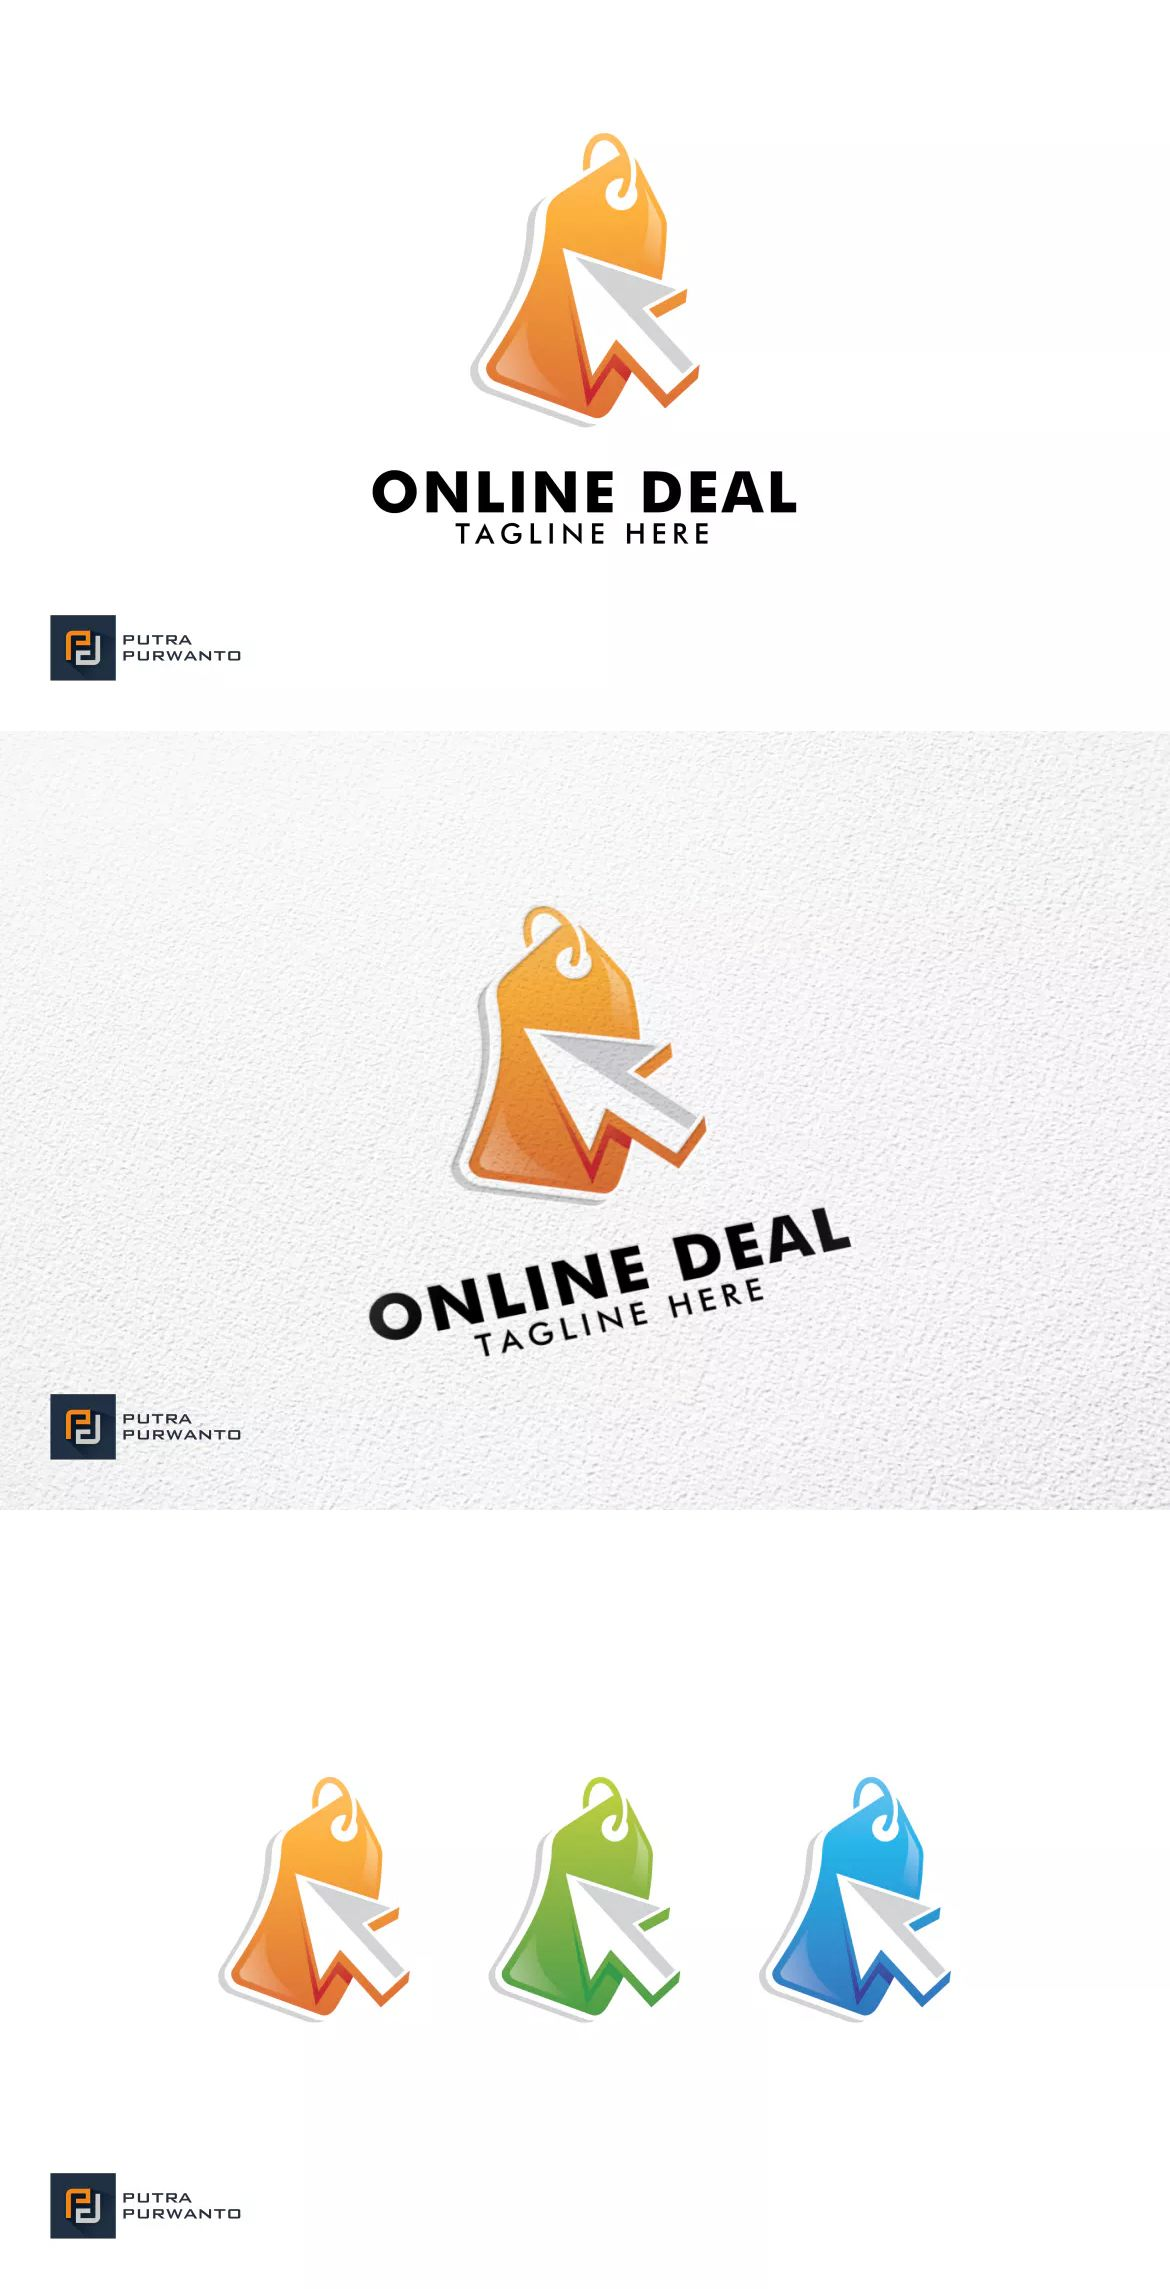 Online Deal Logo Template by putra_purwanto on Logo